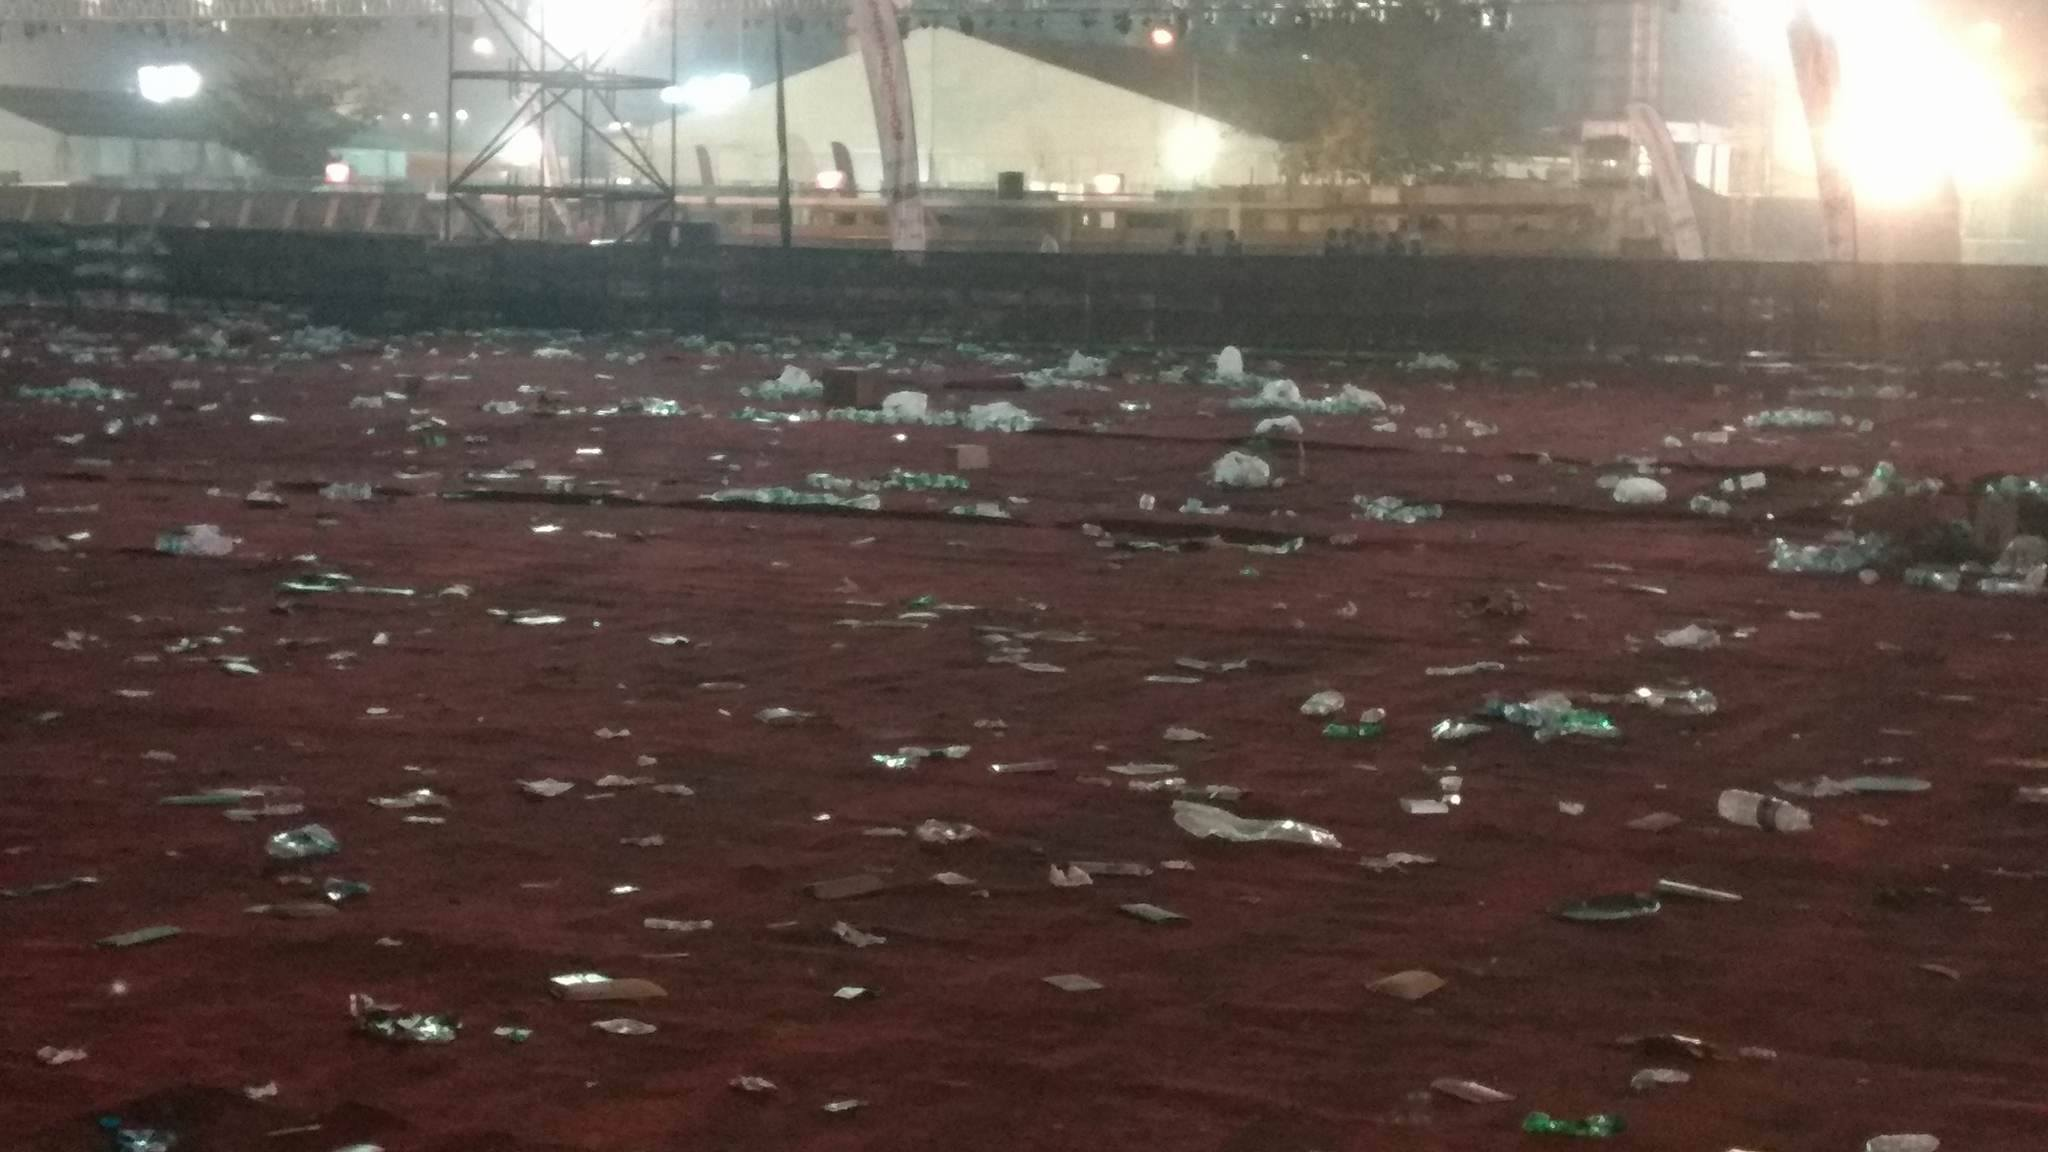 The MMRDA grounds after the concert. Image courtesy: Ornellius Saldanha